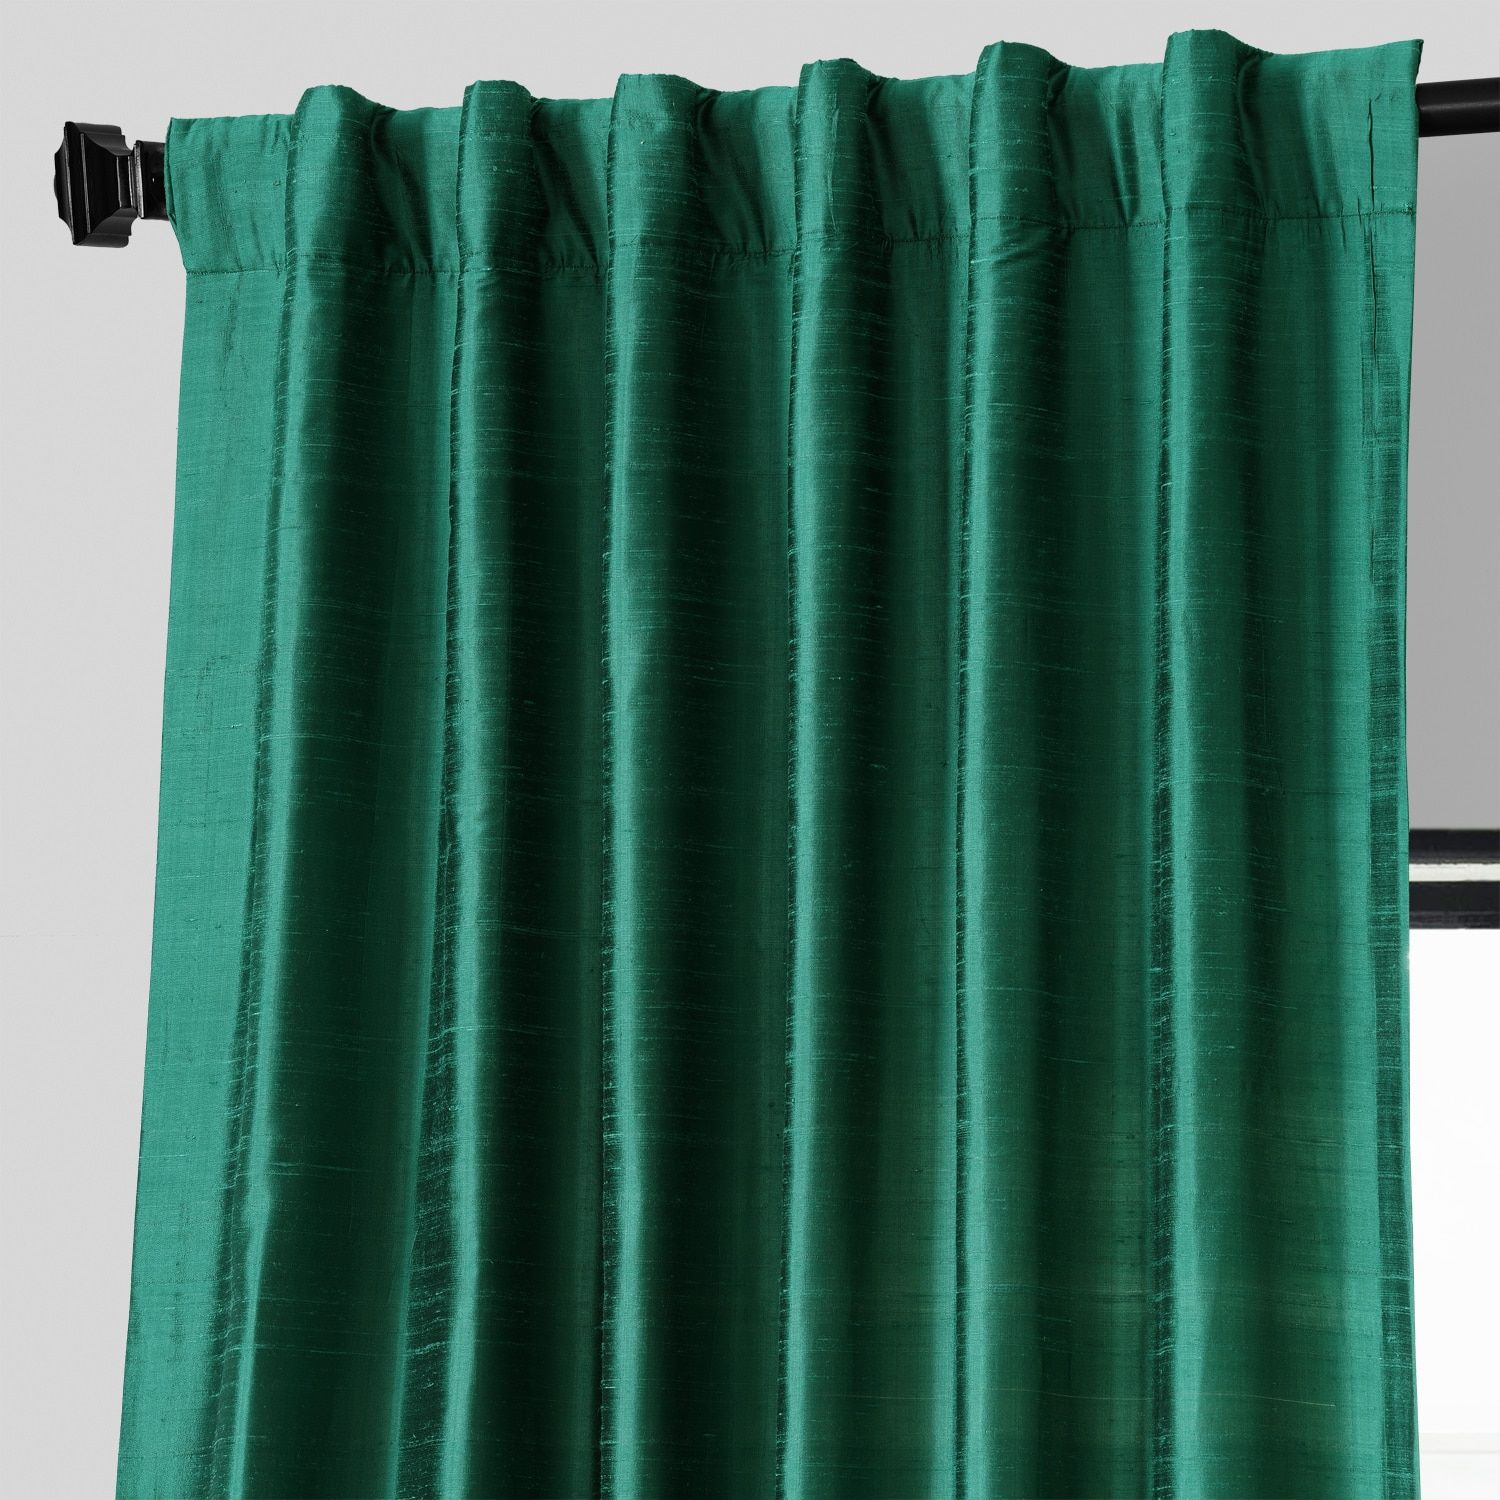 Carnival Green Textured Dupioni Silk Curtain